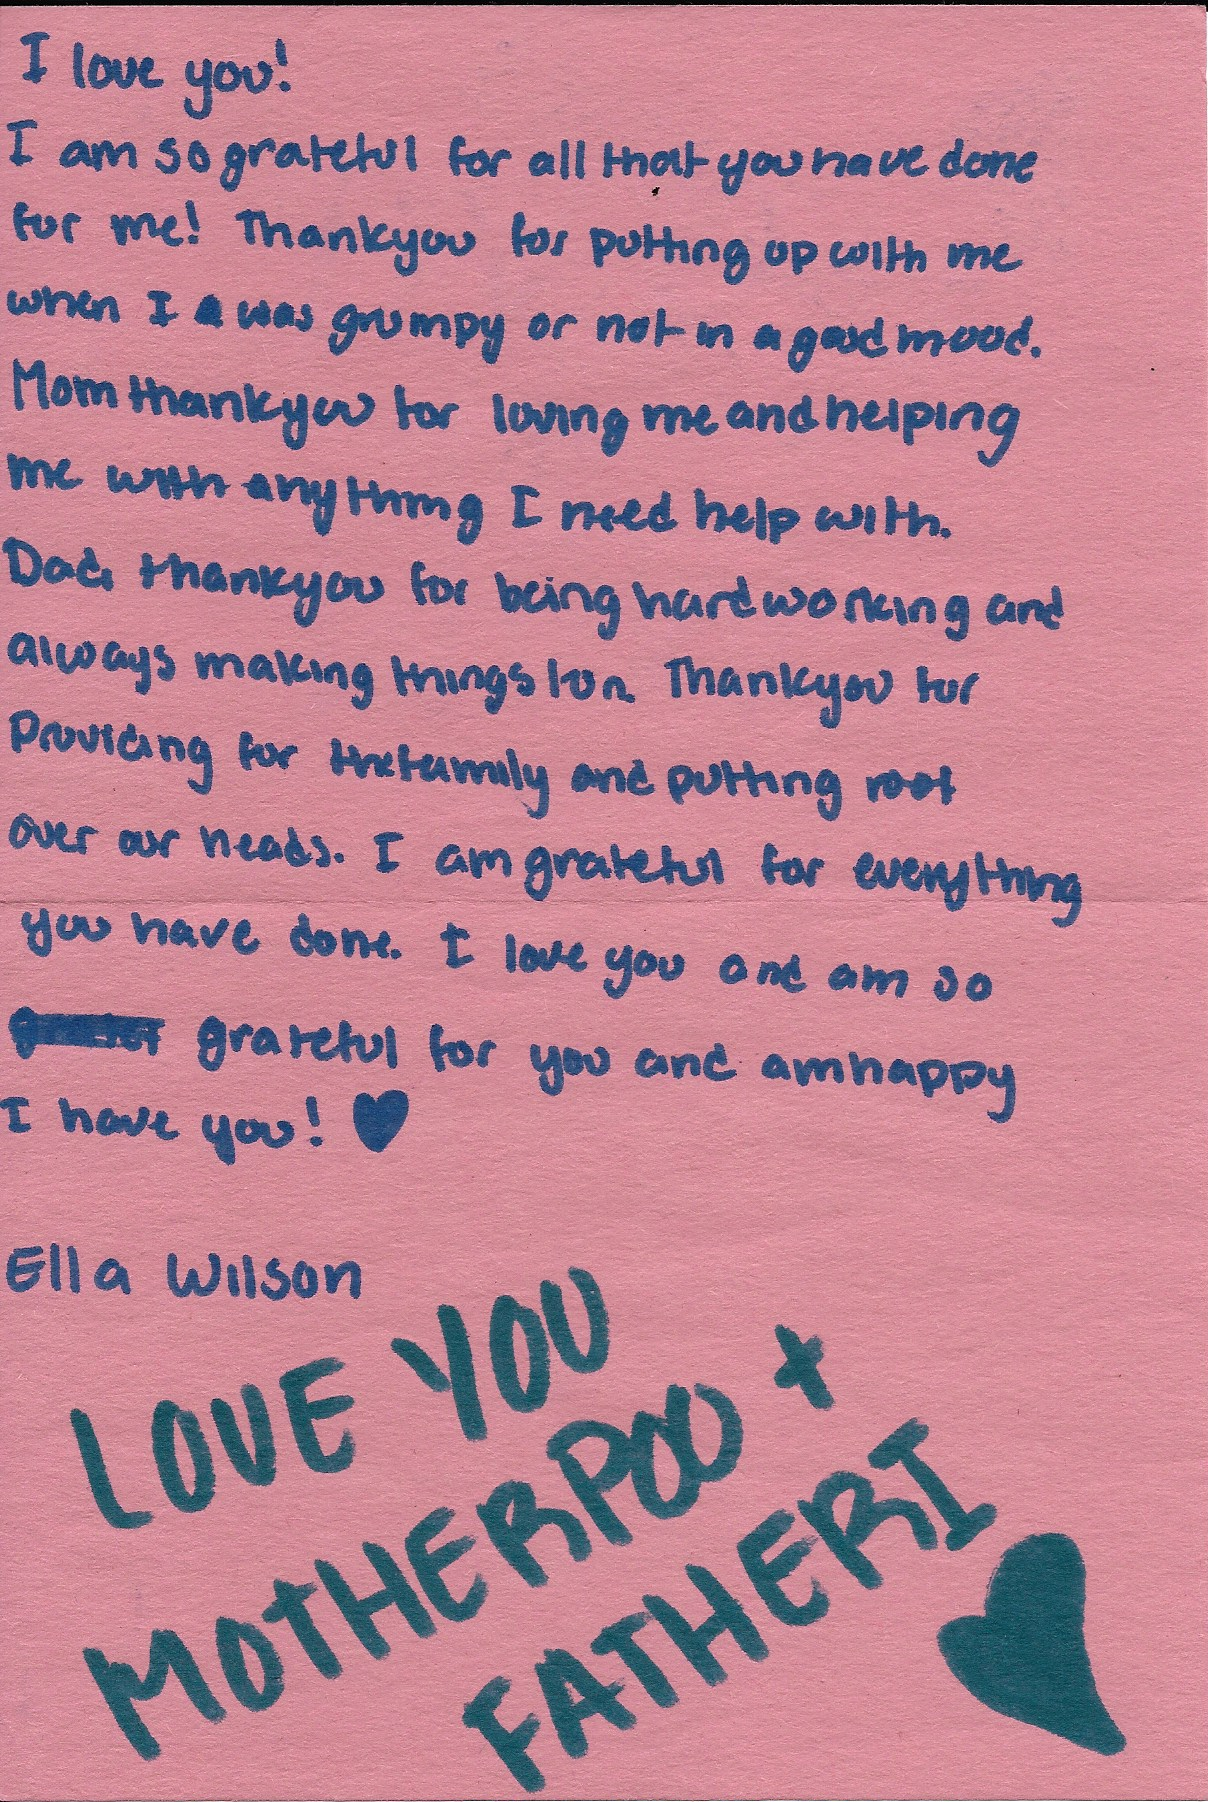 Sweet Note From Ella